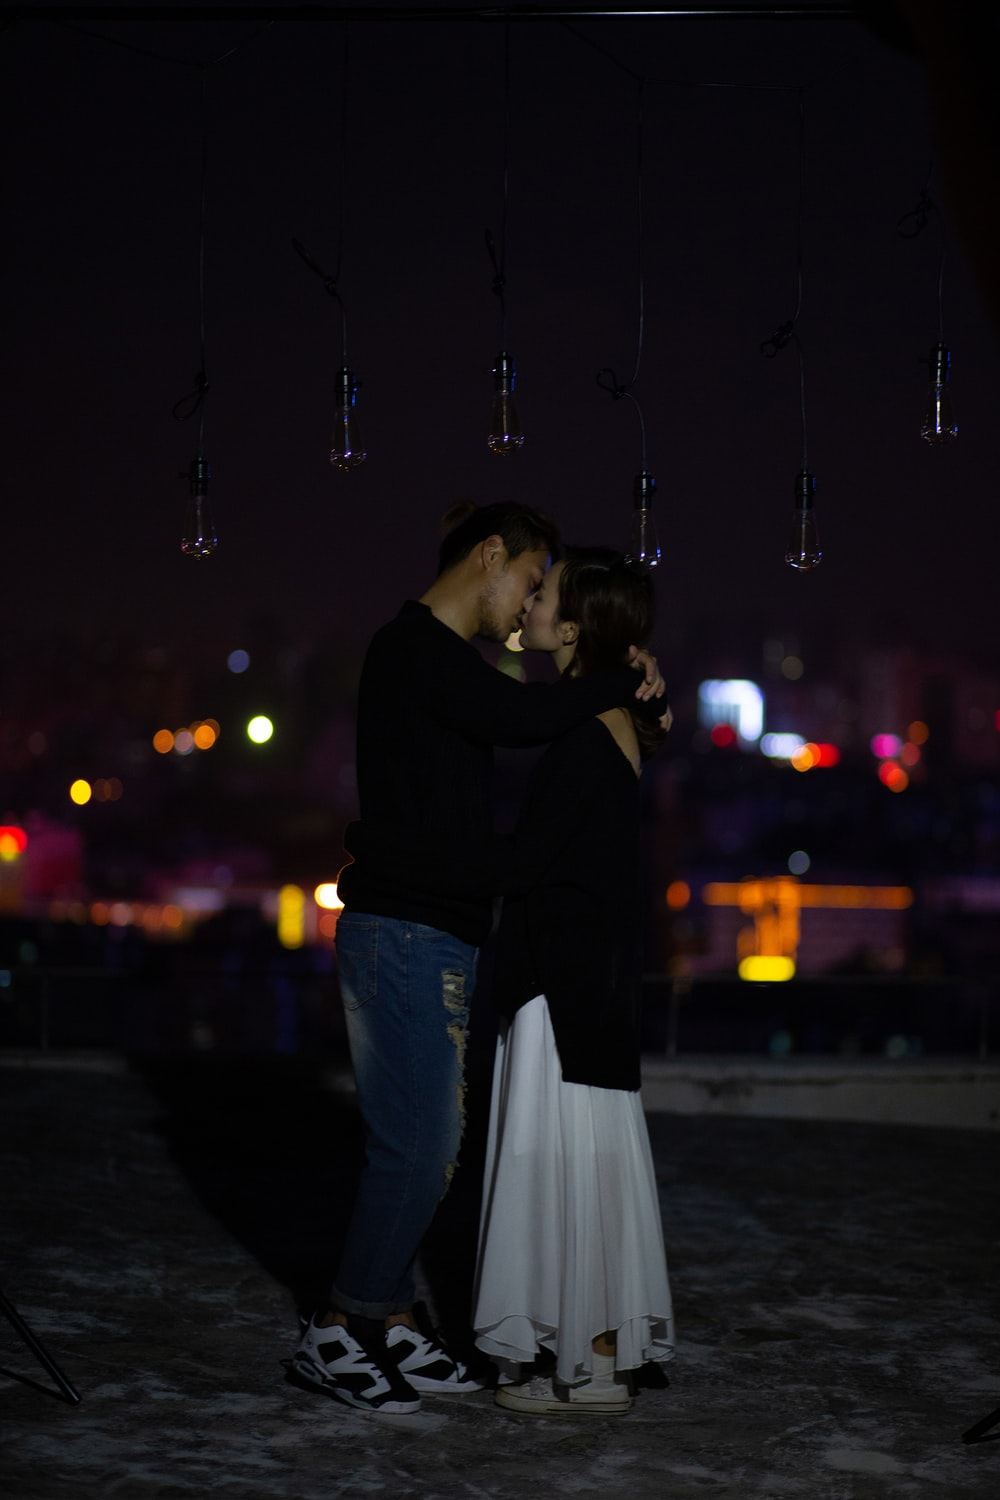 couple kissing at night